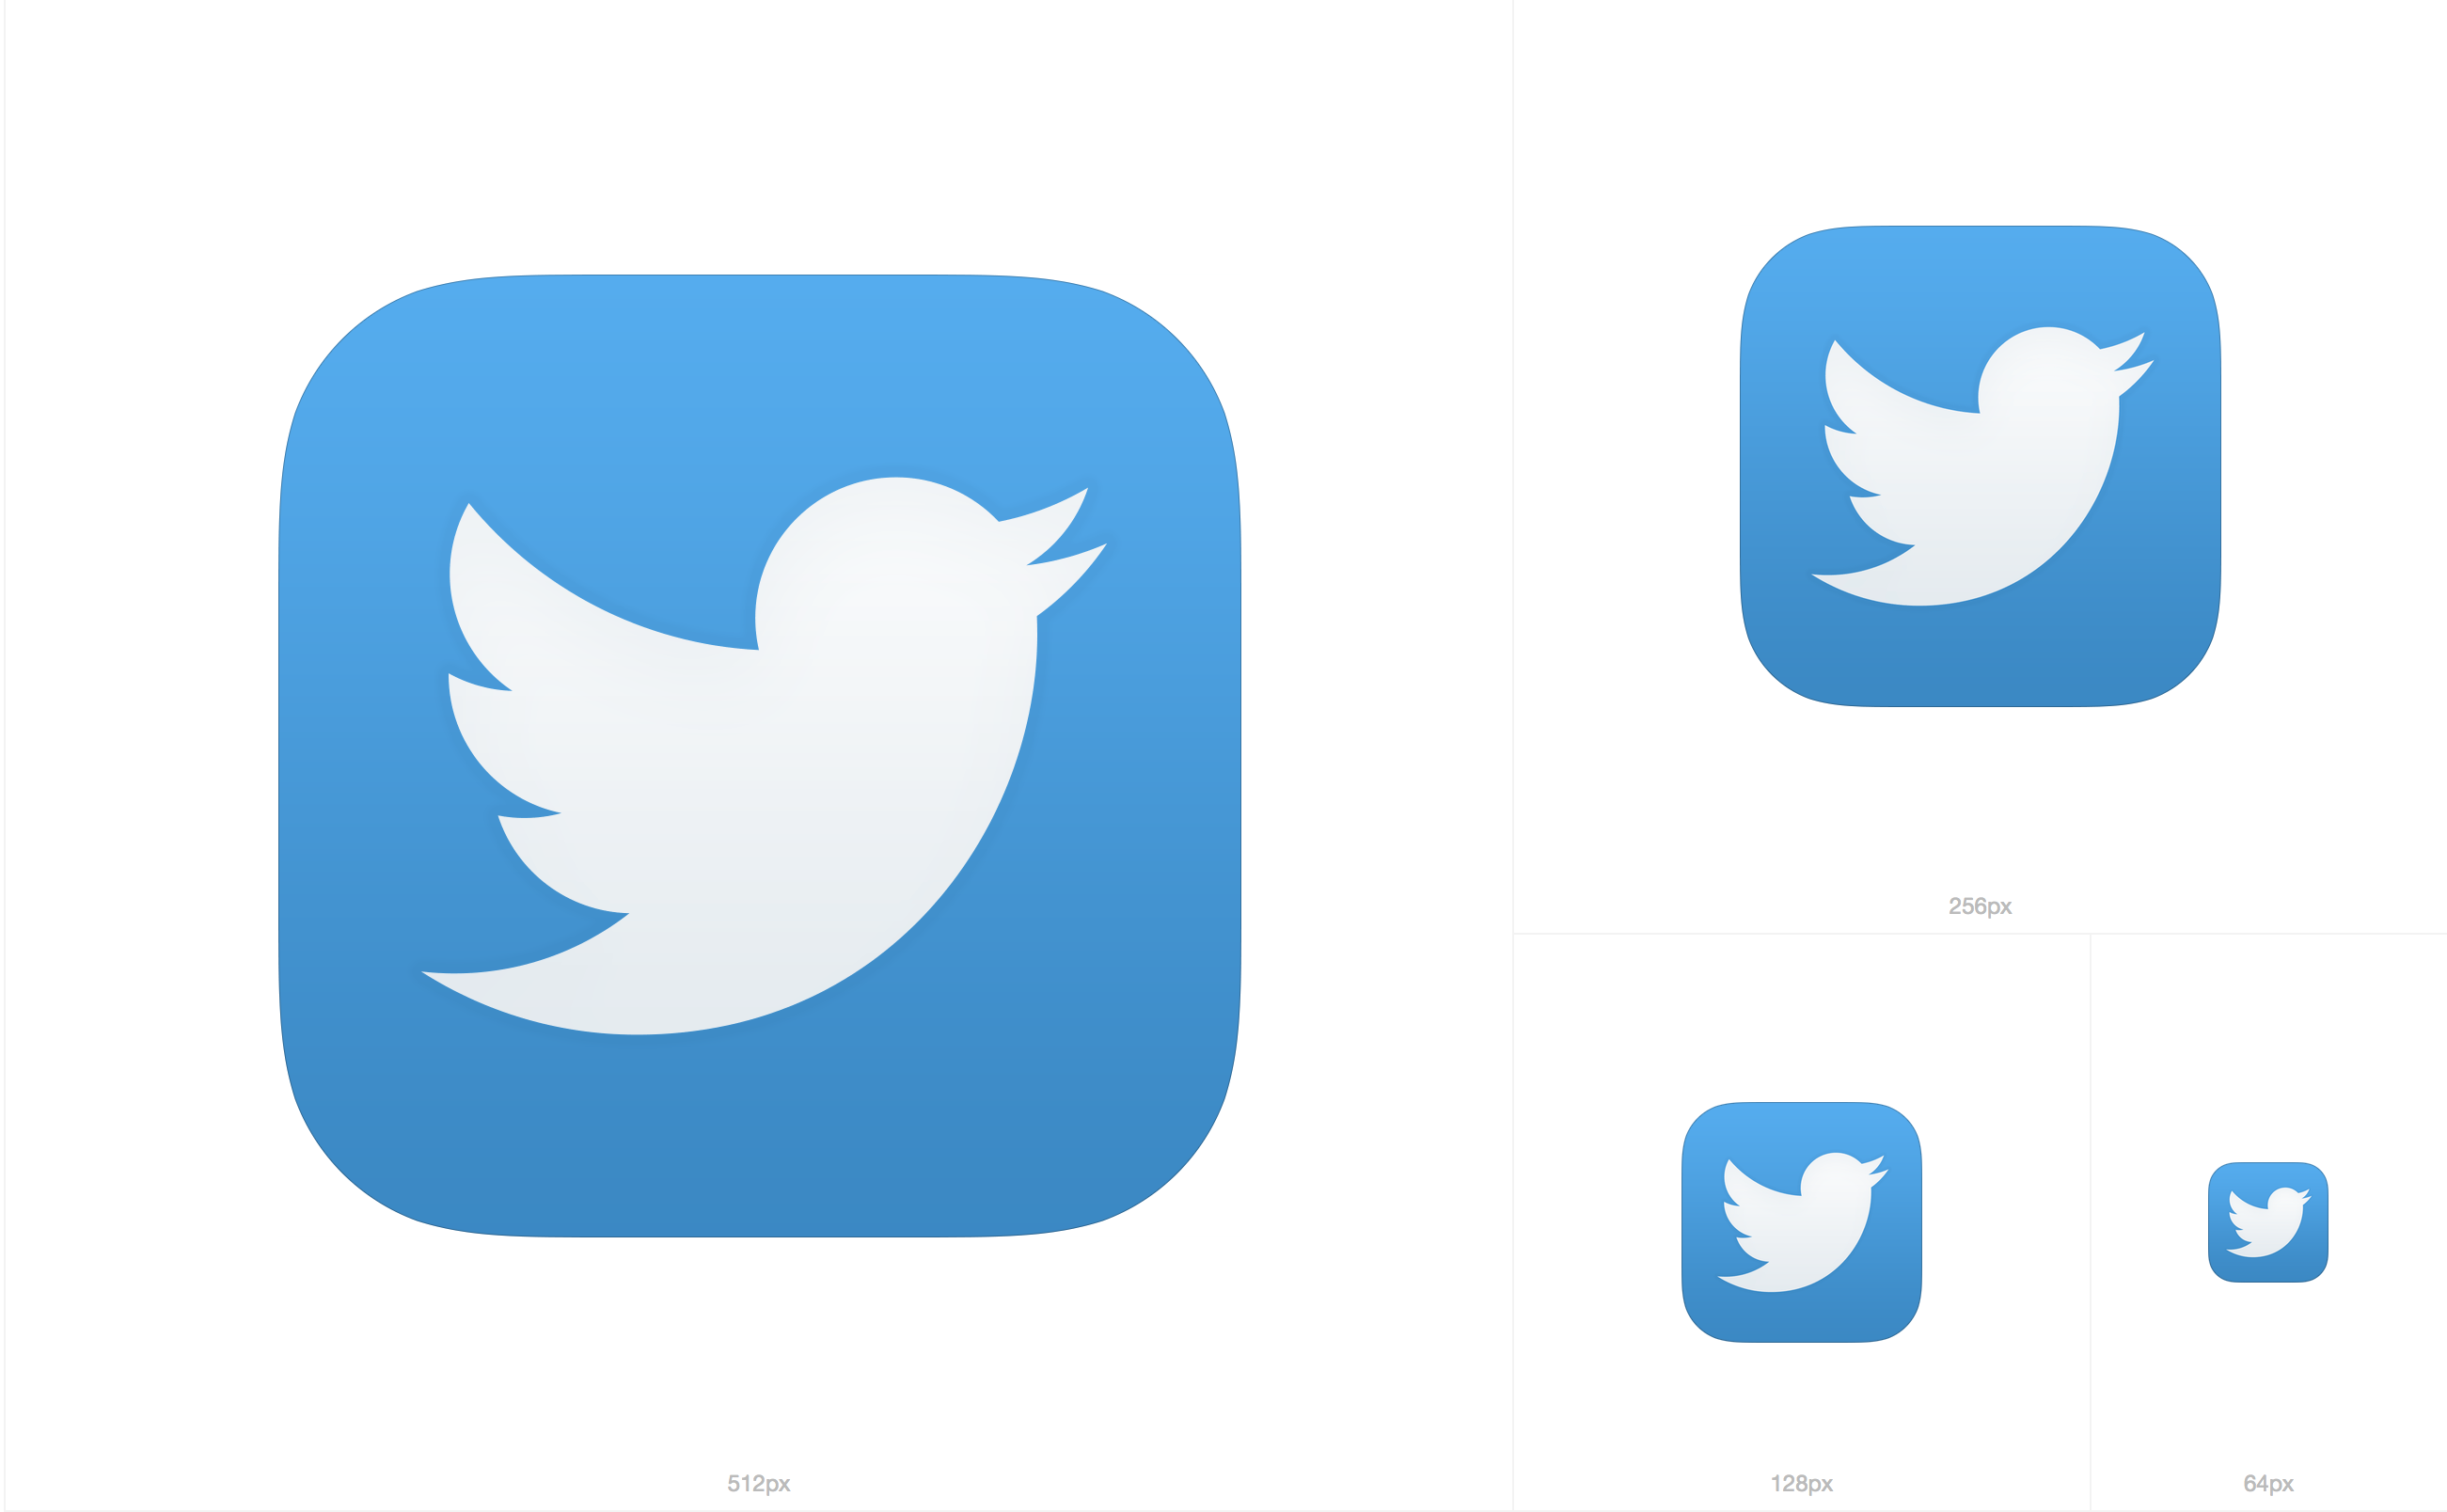 Twitter App Icon Png #103604.